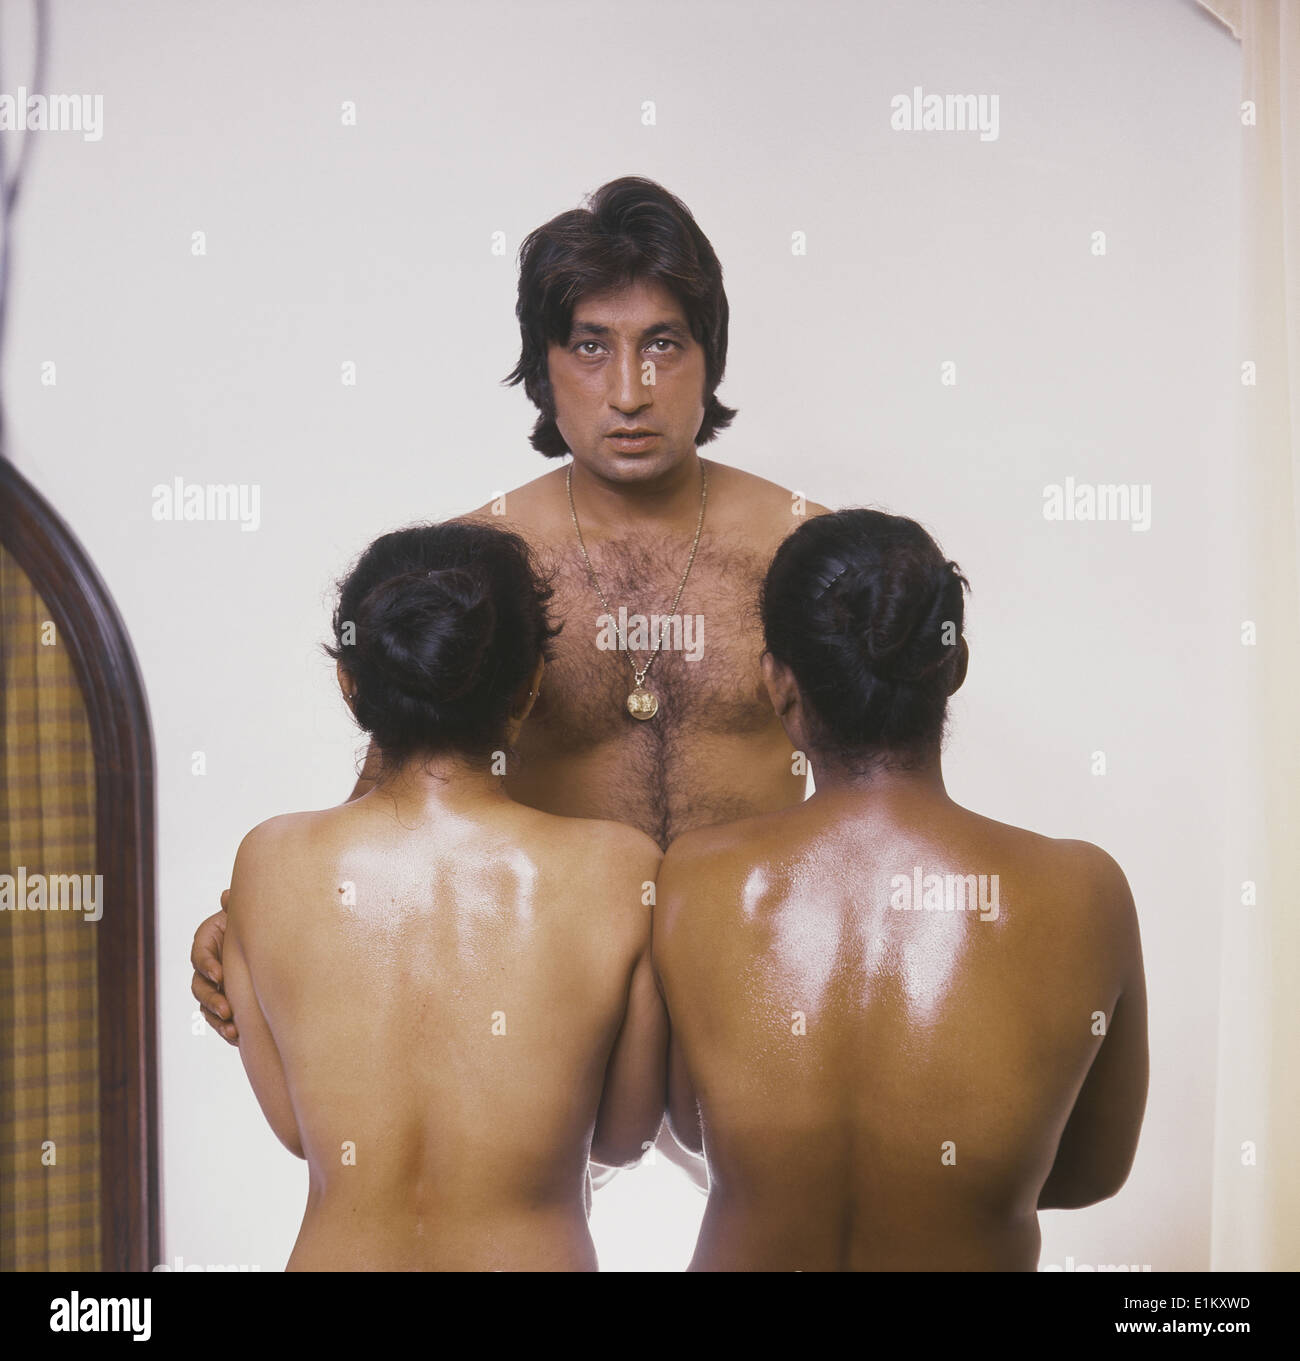 nudeindianheroes-exstreamly-old-guys-with-there-nobs-stuck-up-cunts